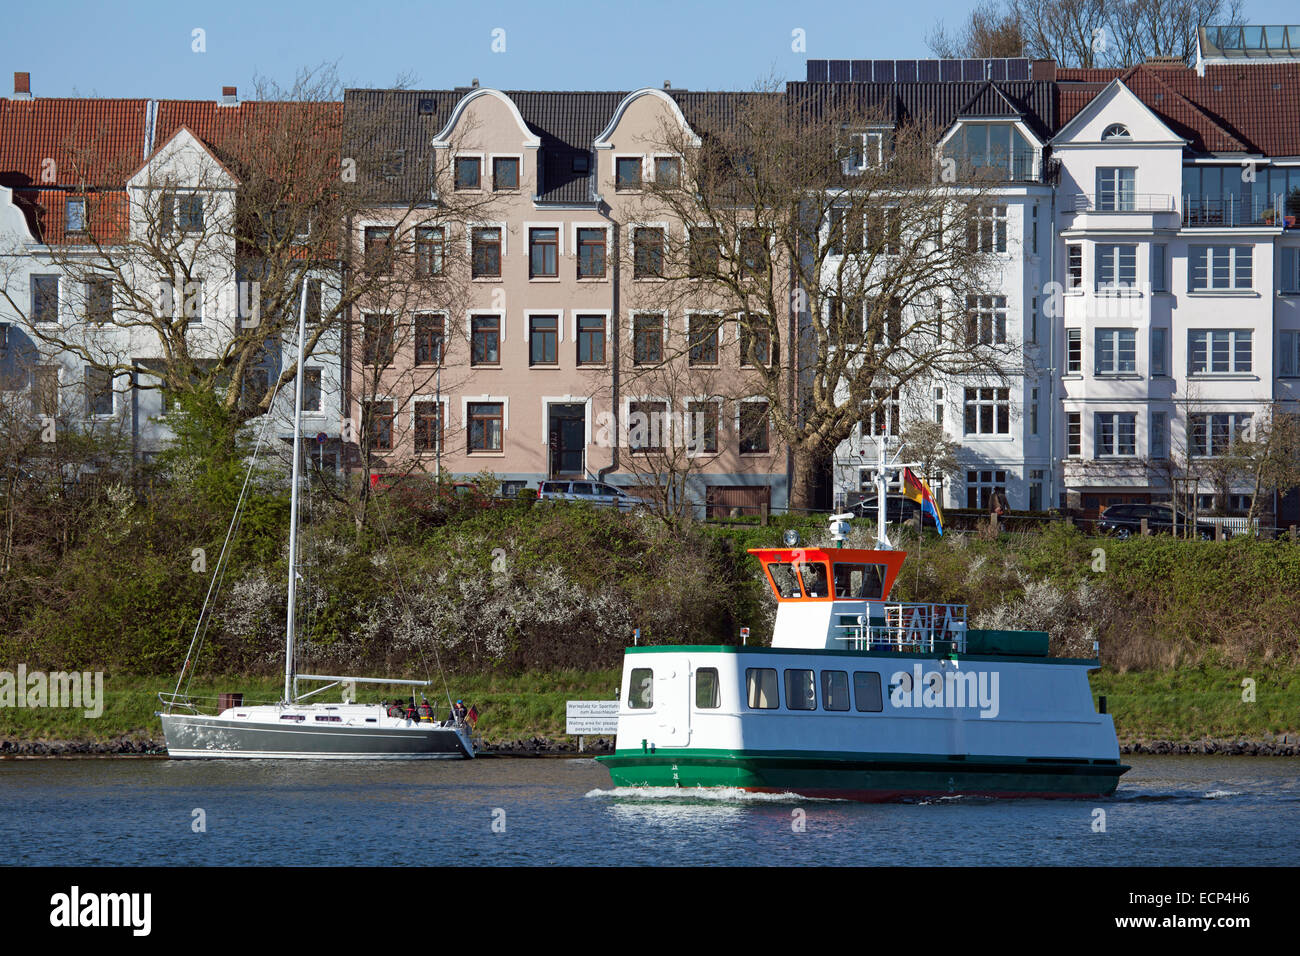 Kiel Canal, Ferry crossing in Holtenau, Germany - Stock Image